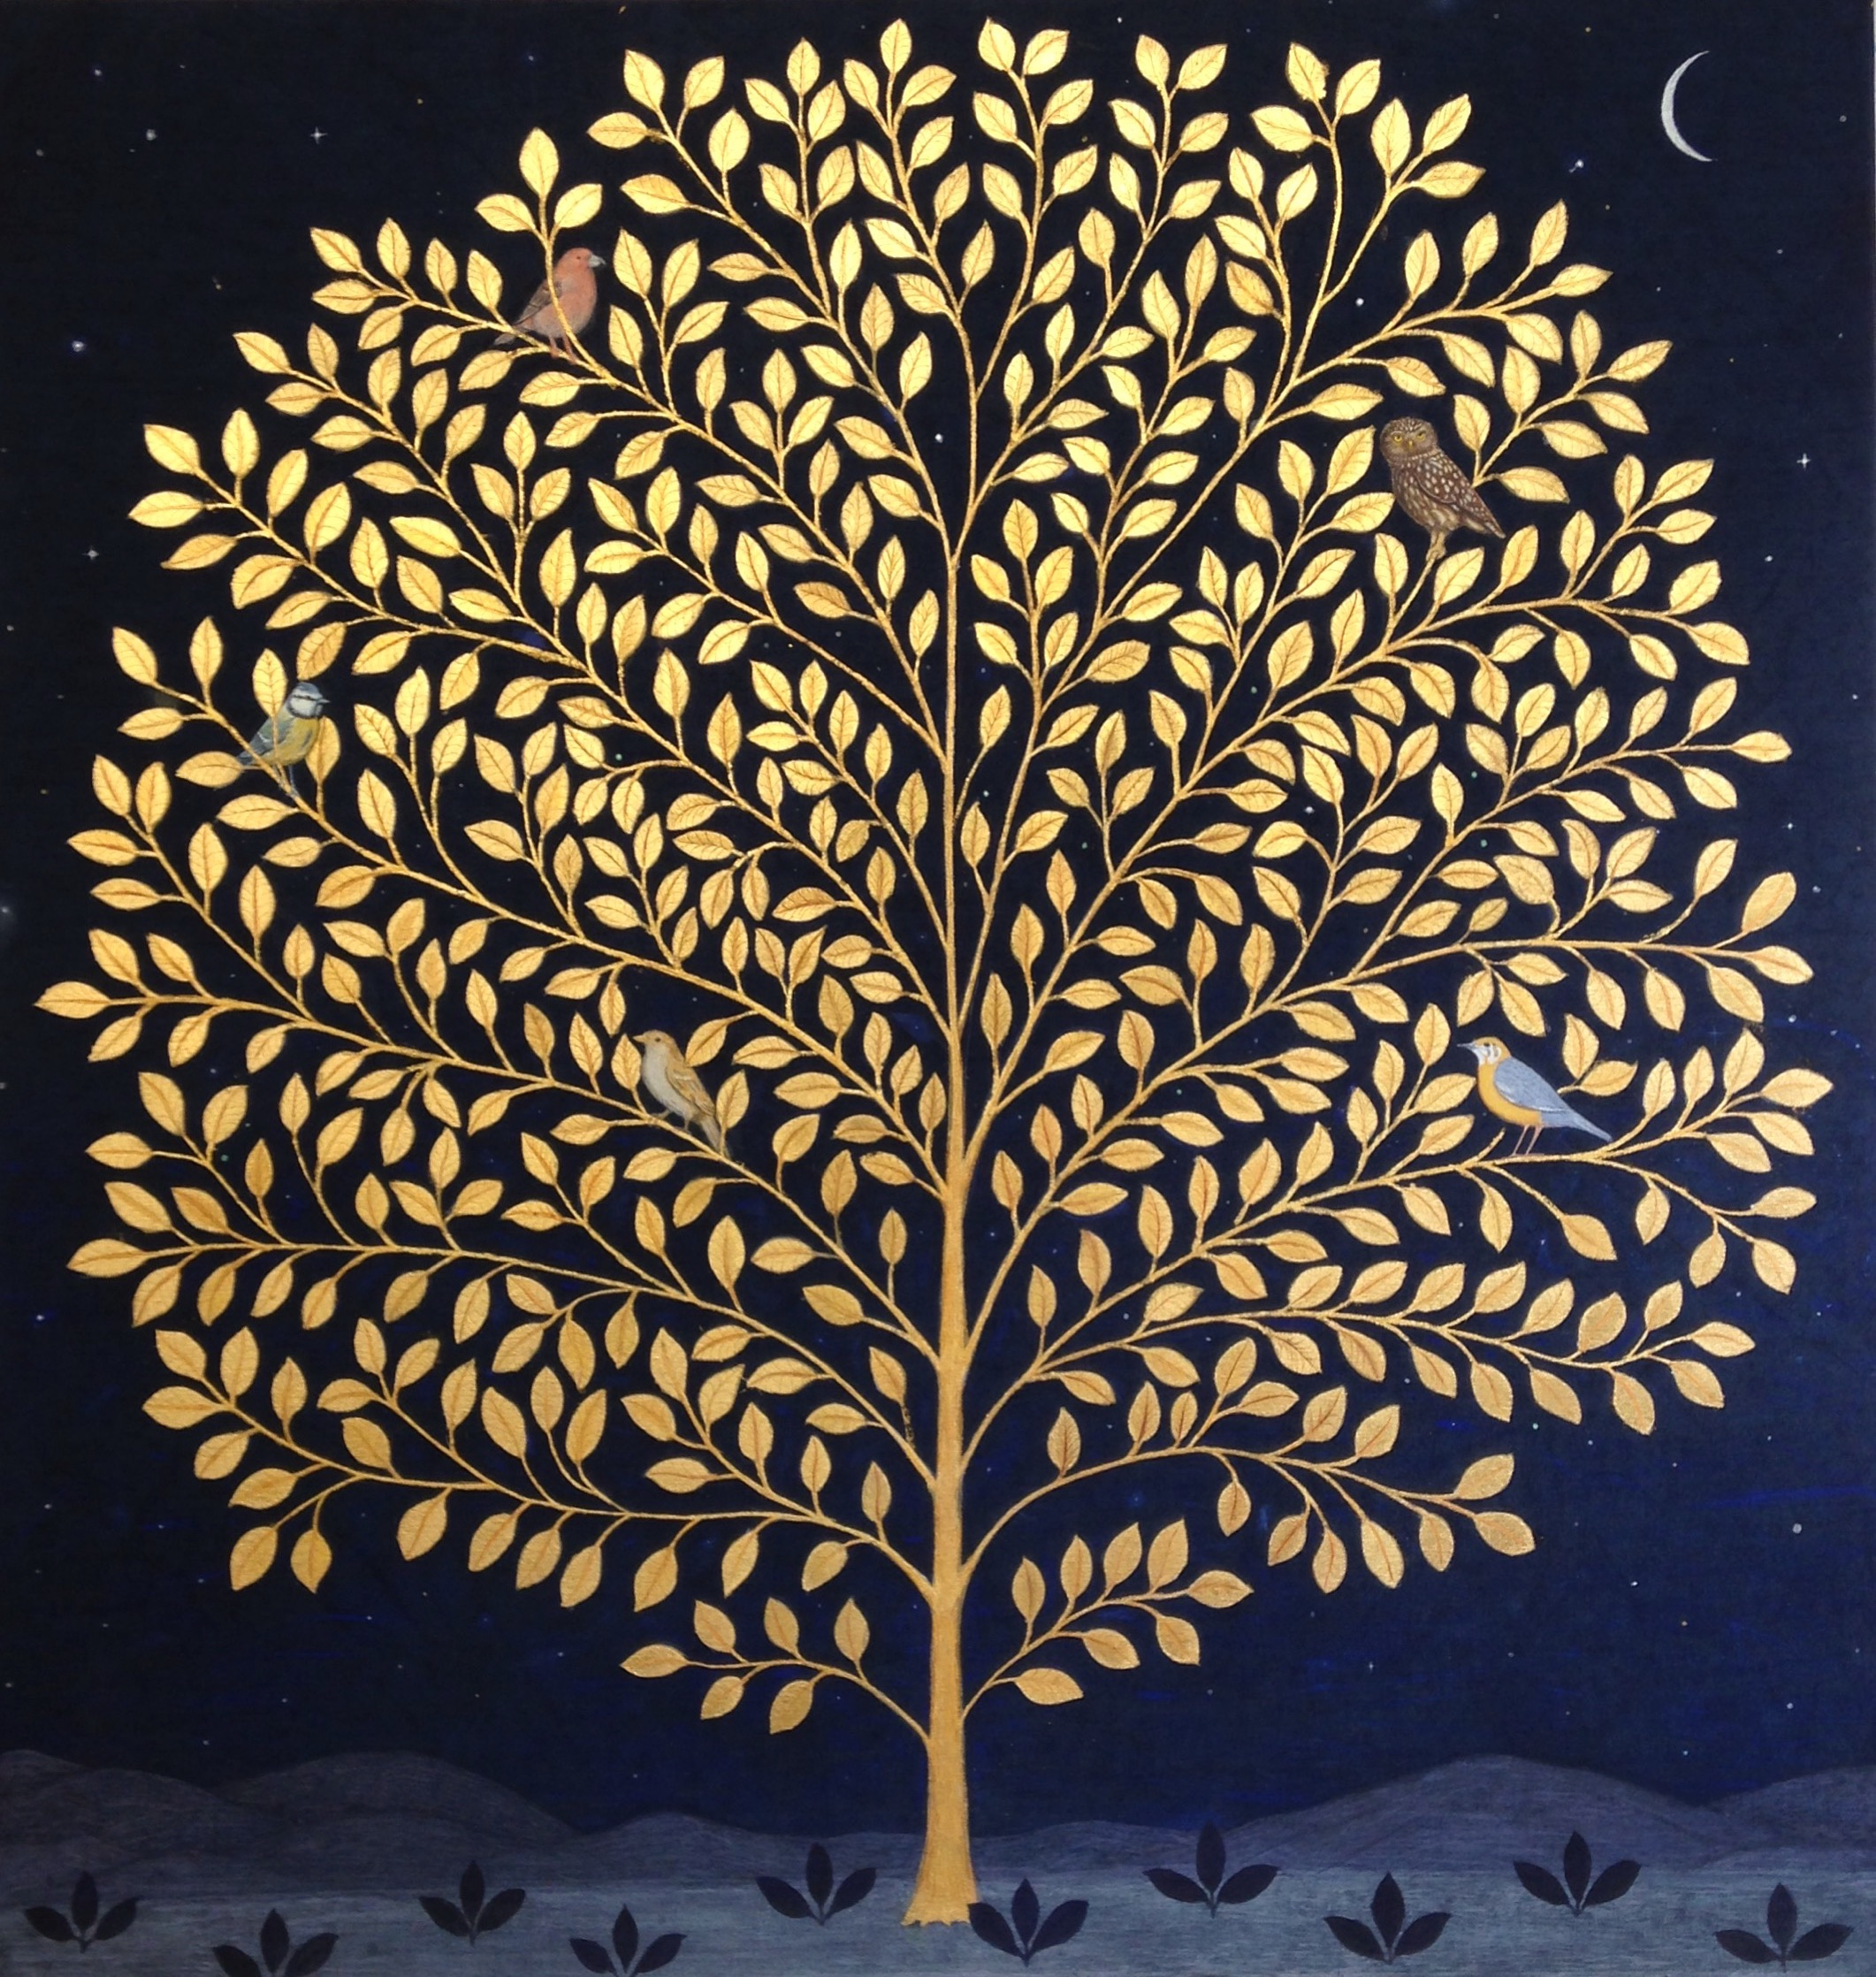 The Night Tree  Gold leaf on Indigo dyed Linen  48 x46inches